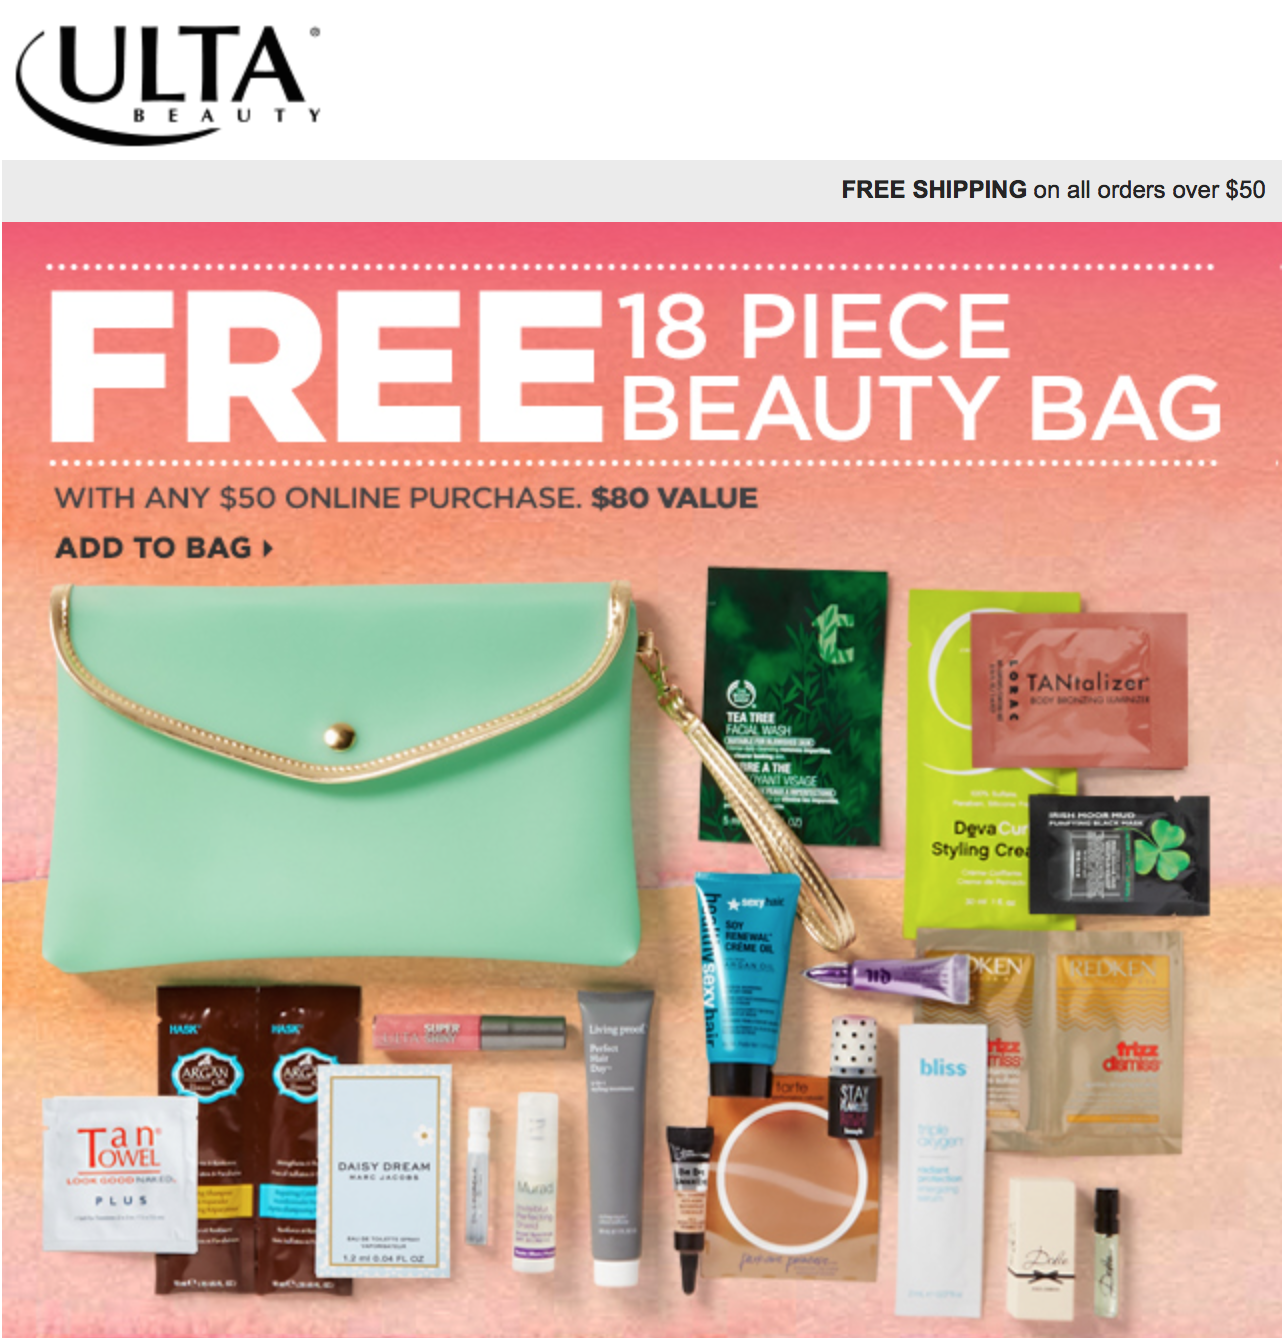 ULTA Beauty offers customers prestige & mass cosmetics, makeup, fragrance, skincare, bath & body, haircare tools & salon. bareMinerals, Smashbox, Murad & more.